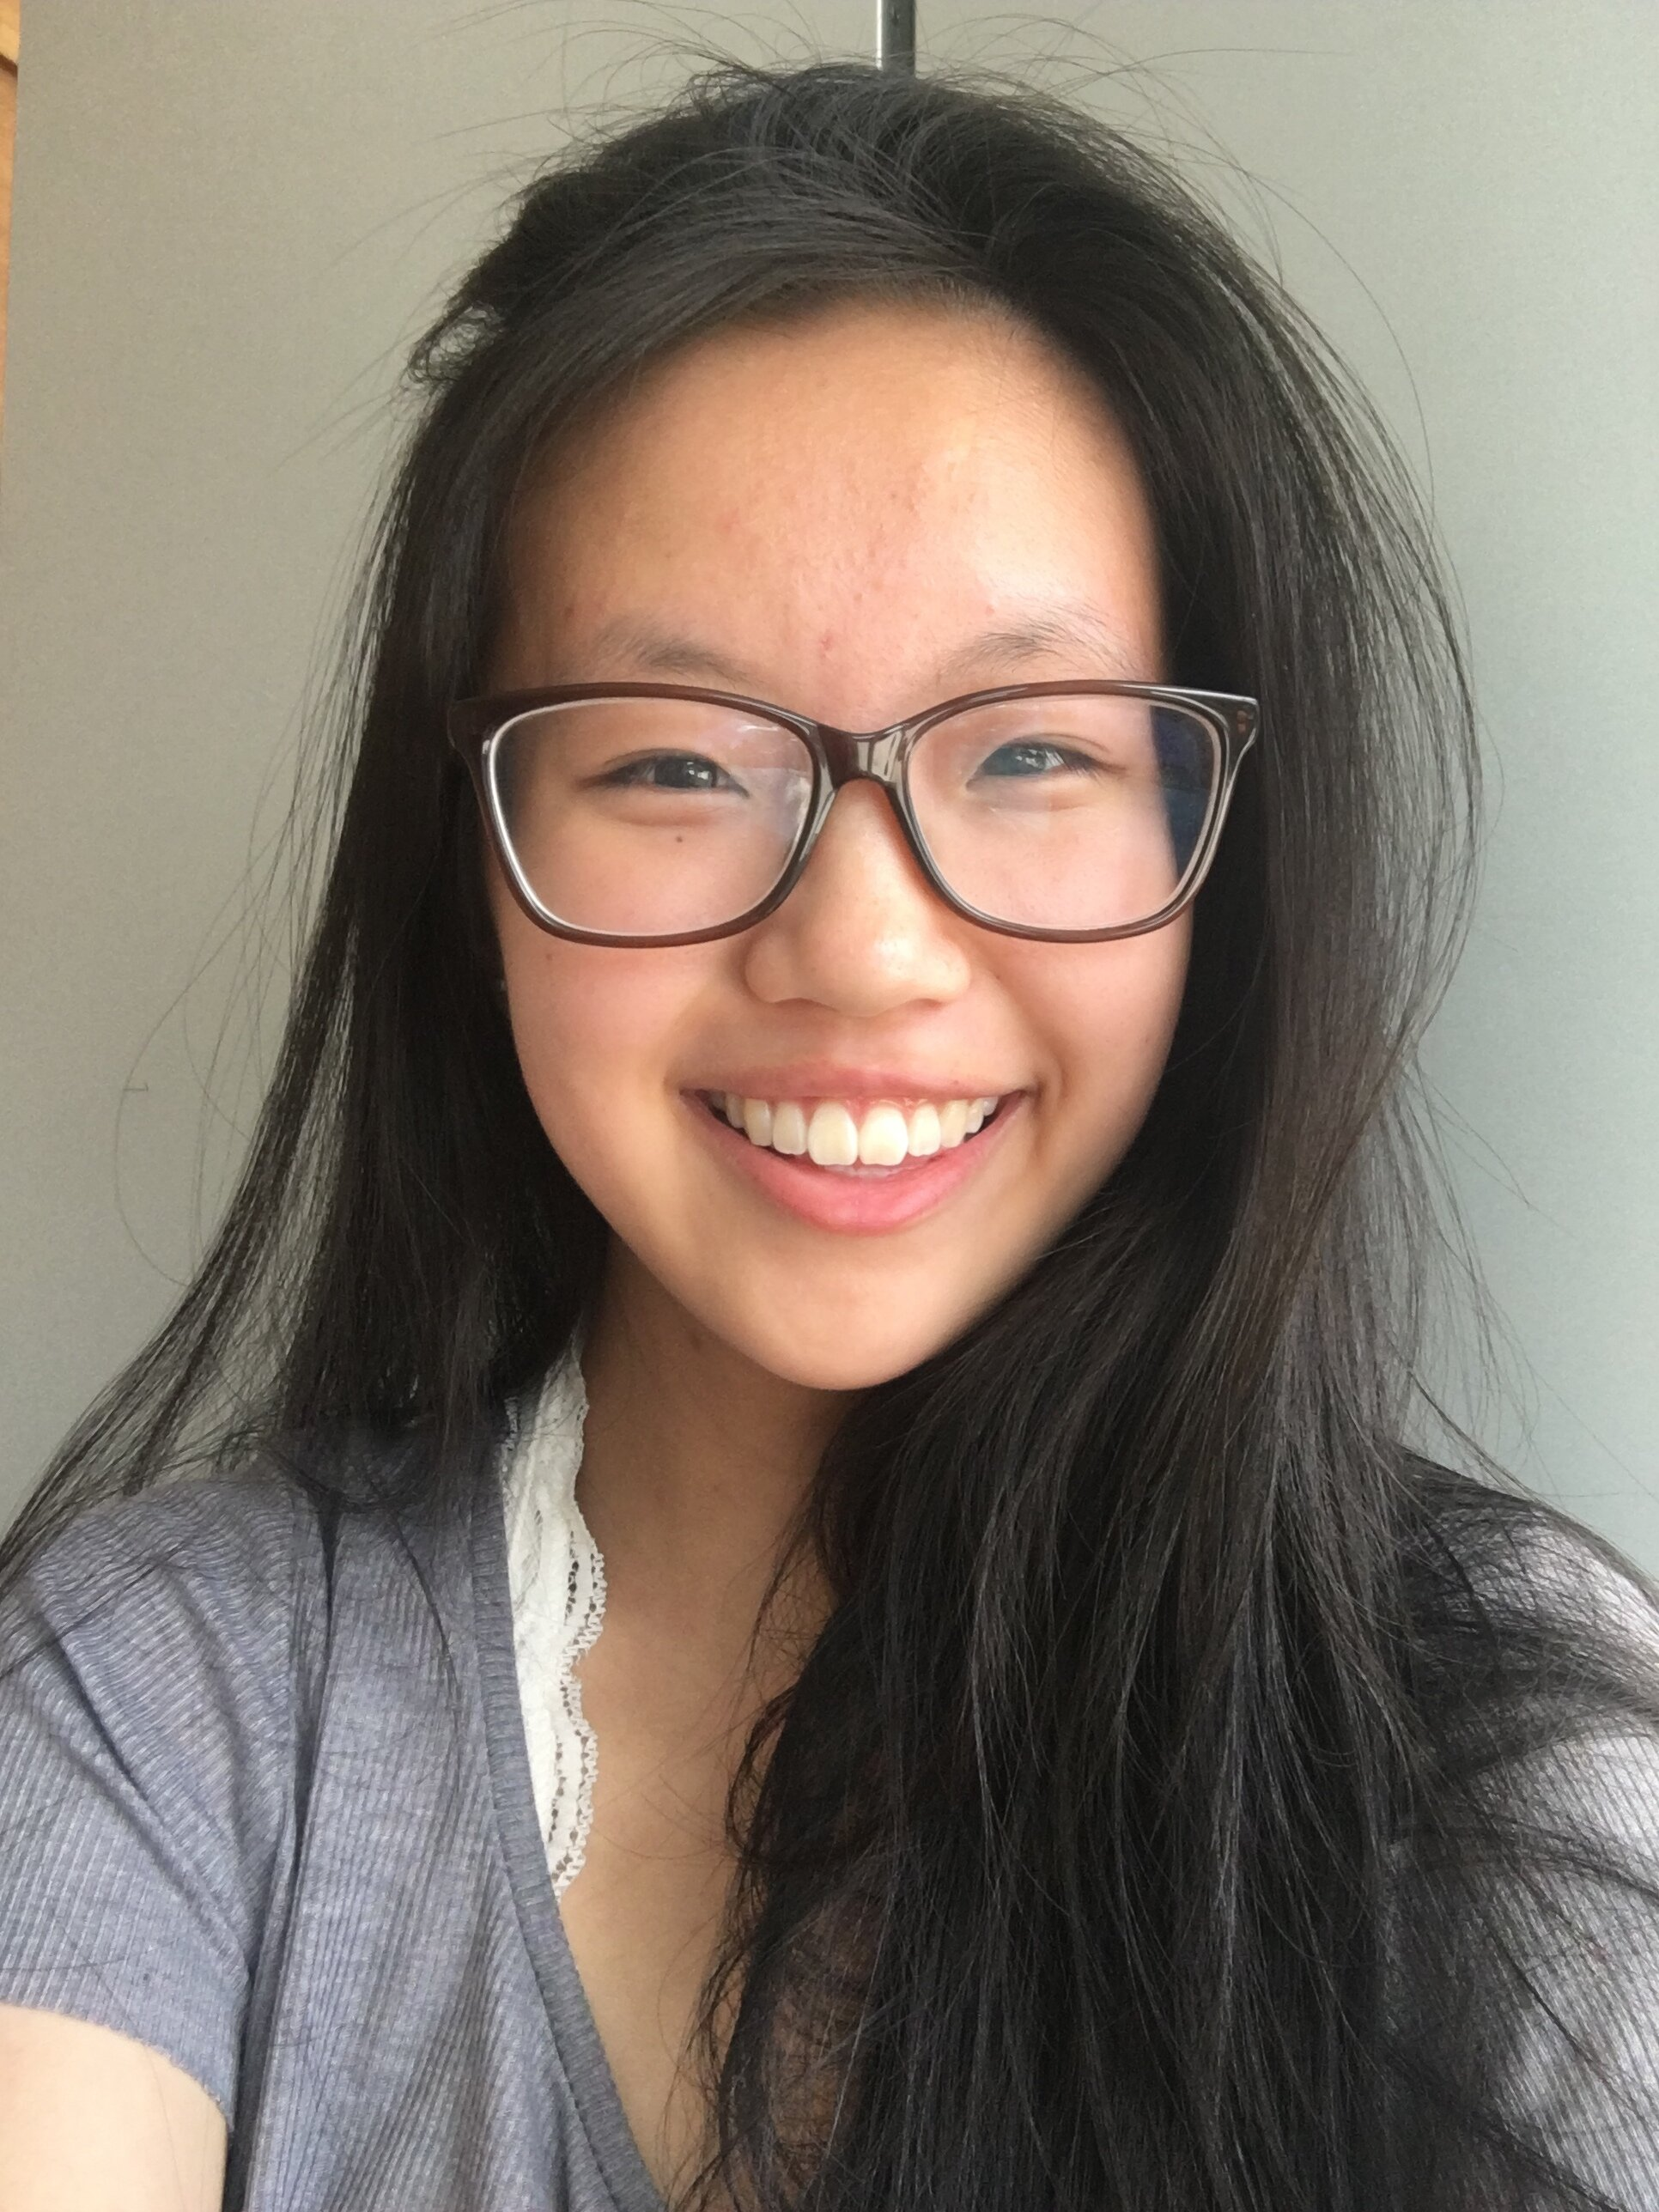 """Rebekah Cheng    Pronouns:  She/Her/Hers   Academic Year:  Freshman   Major:  Nursing   Hometown:  Bucks County, PA   Cultural Identity:  Chinese-American  """"I like to play violin and guitar, and I think I am an equally an introvert and extrovert. I grew up in a very homogeneous town with little diversity (especially Asian representation!) and I am super excited to join a community of Asians on campus"""""""